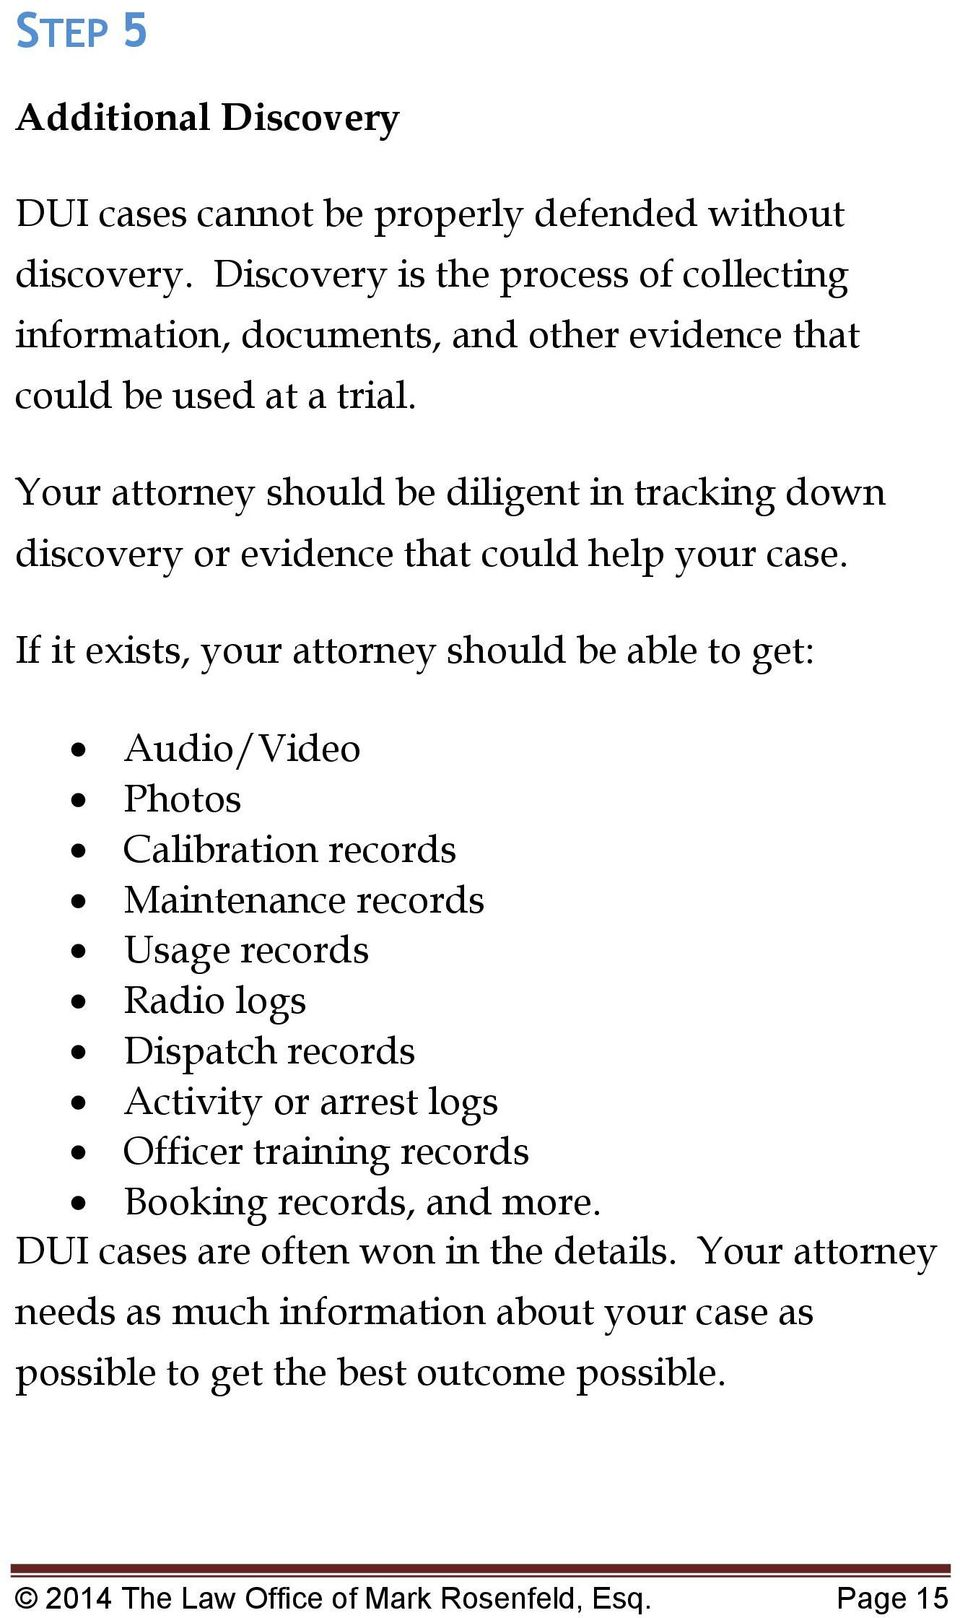 Your attorney should be diligent in tracking down discovery or evidence that could help your case.